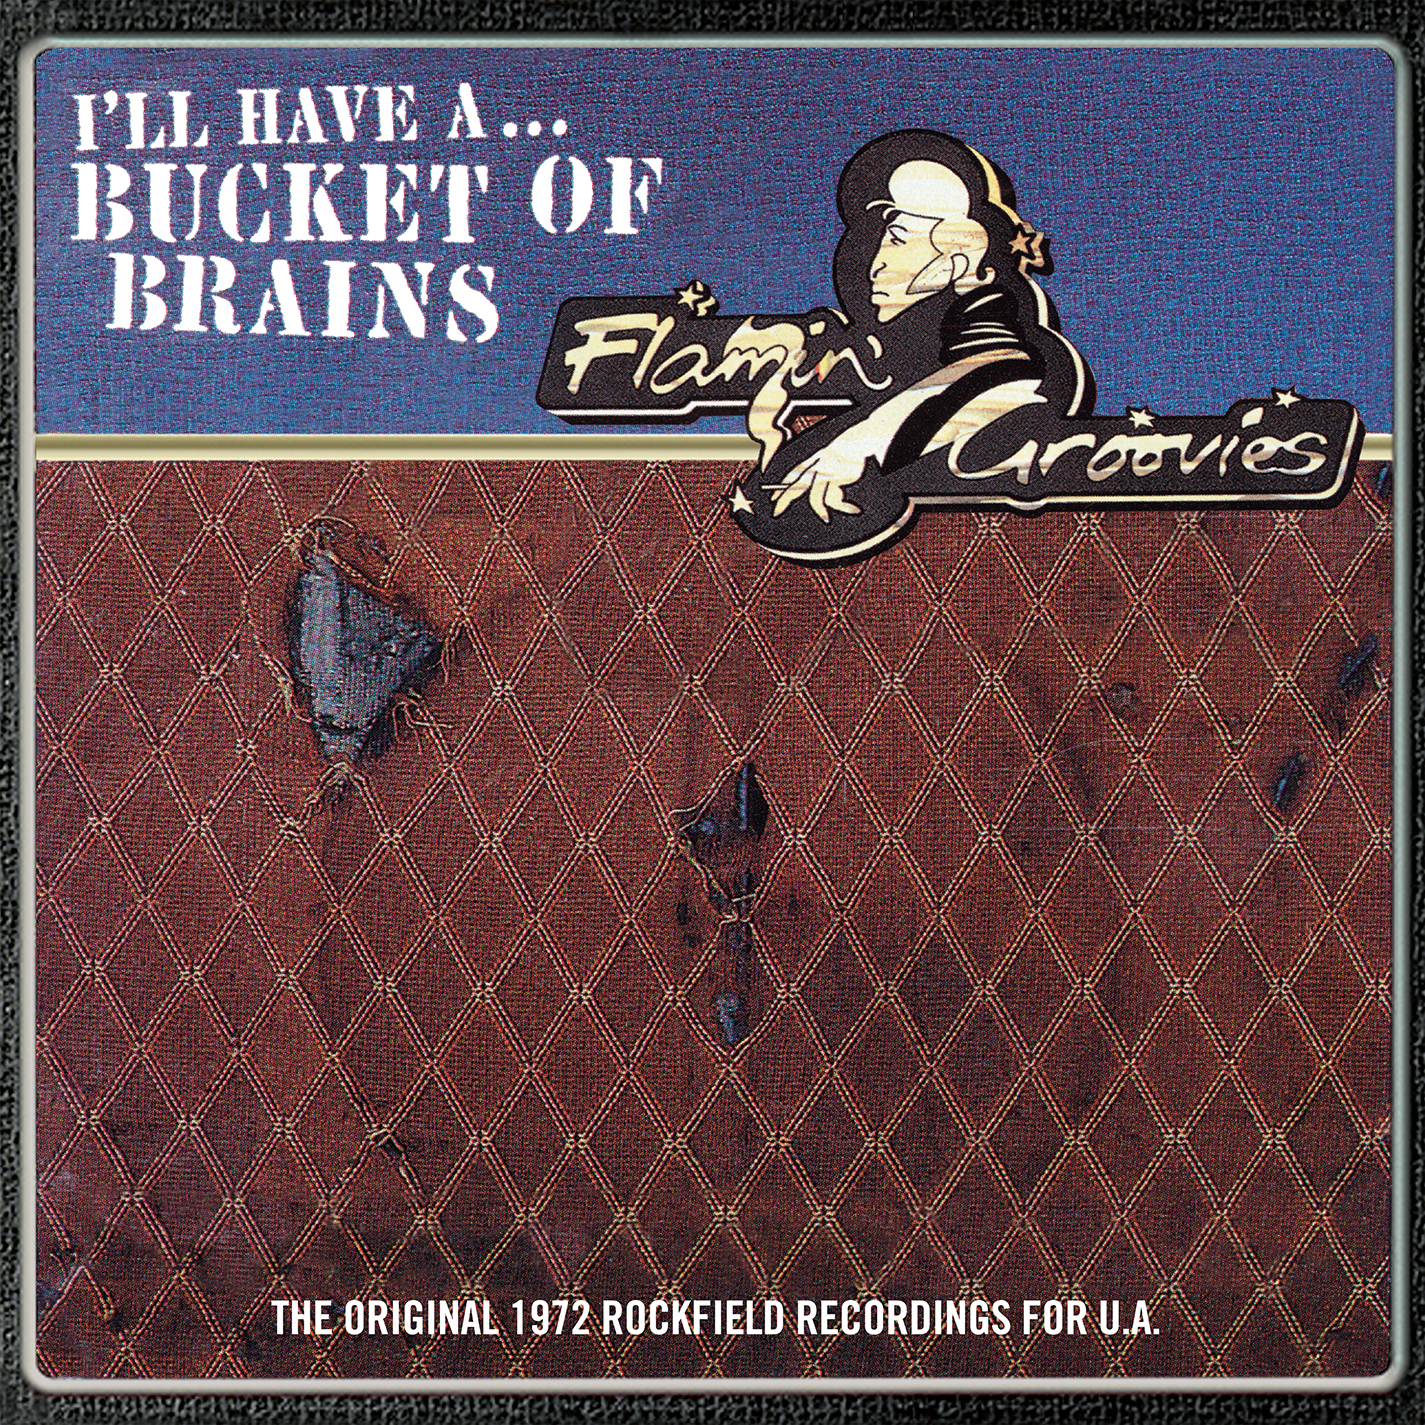 The Flamin' Groovies - Bucket of Brains [RSD Drops 2021]